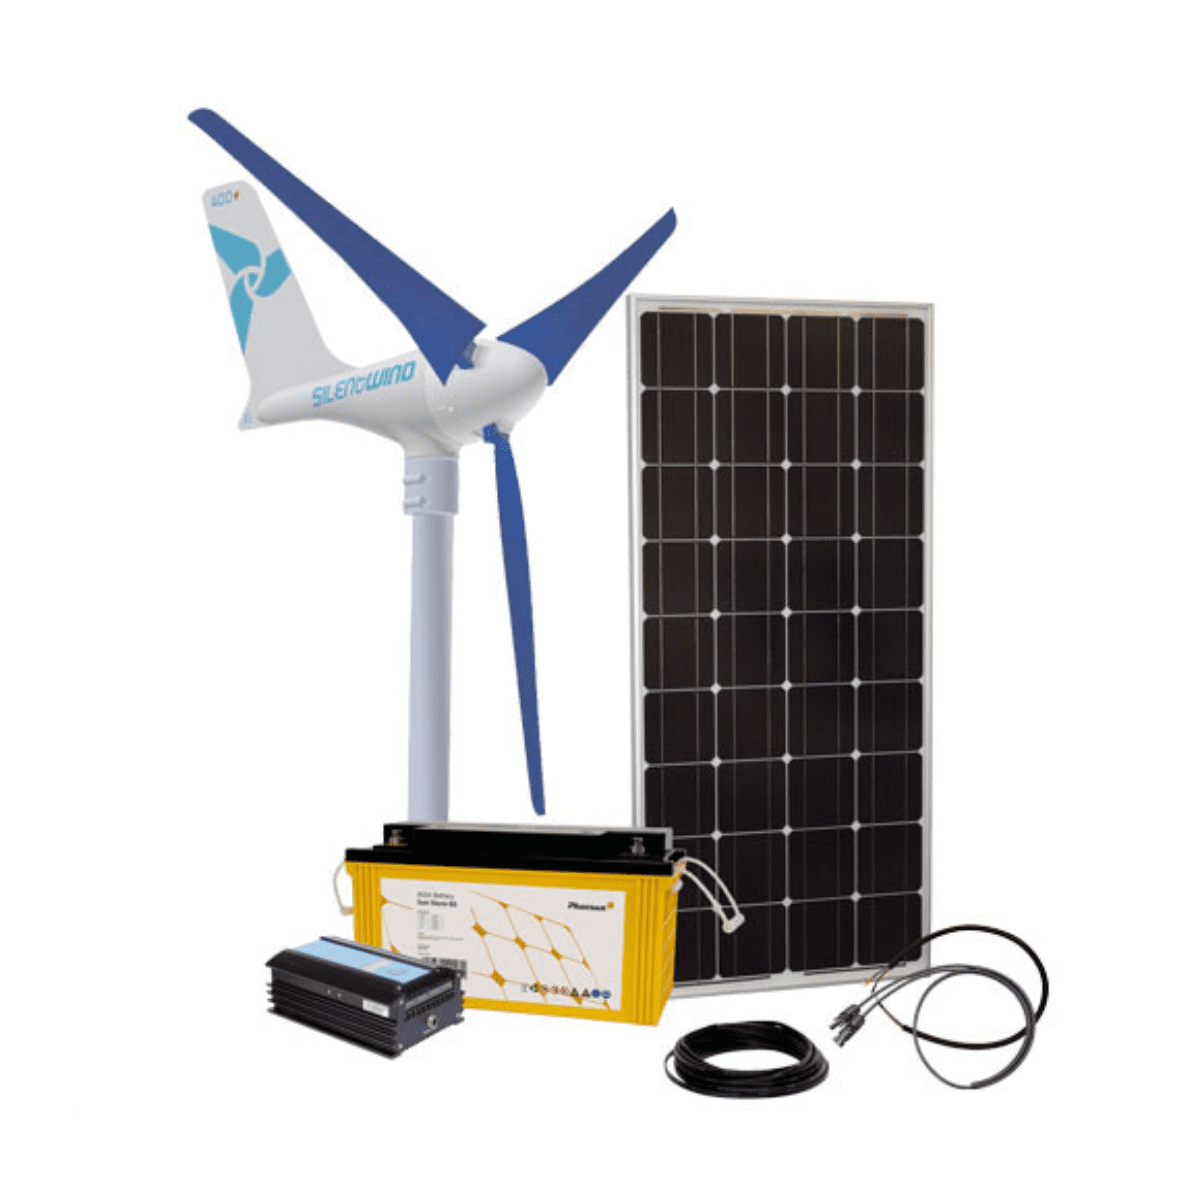 Silentwind 12V 520W Wind Turbine Kit with 100W Solar Panel on Sale